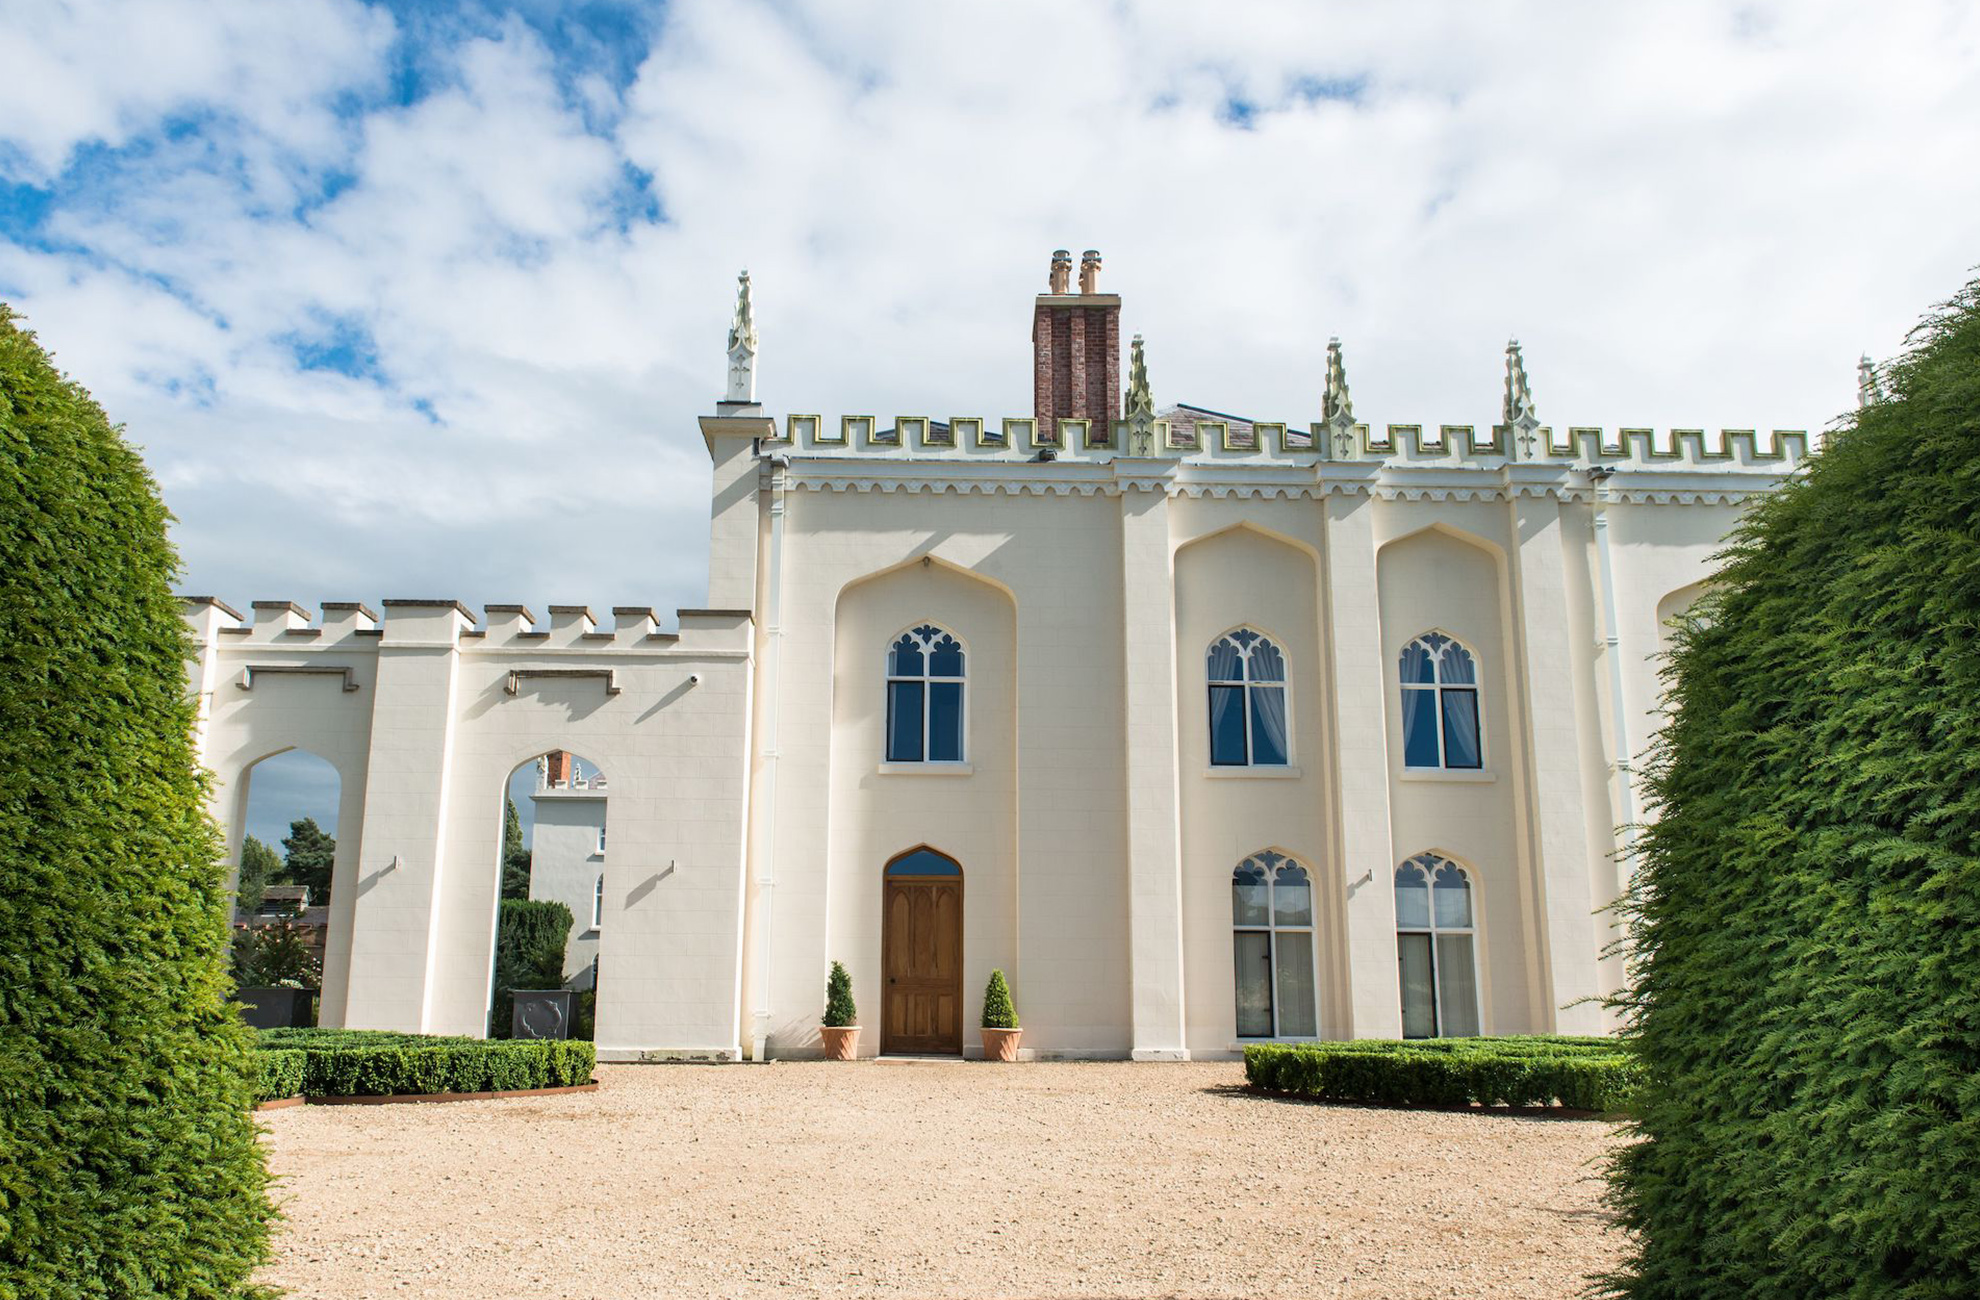 Enjoy a luxury stay in the North Wing accommodation at Combermere Abbey